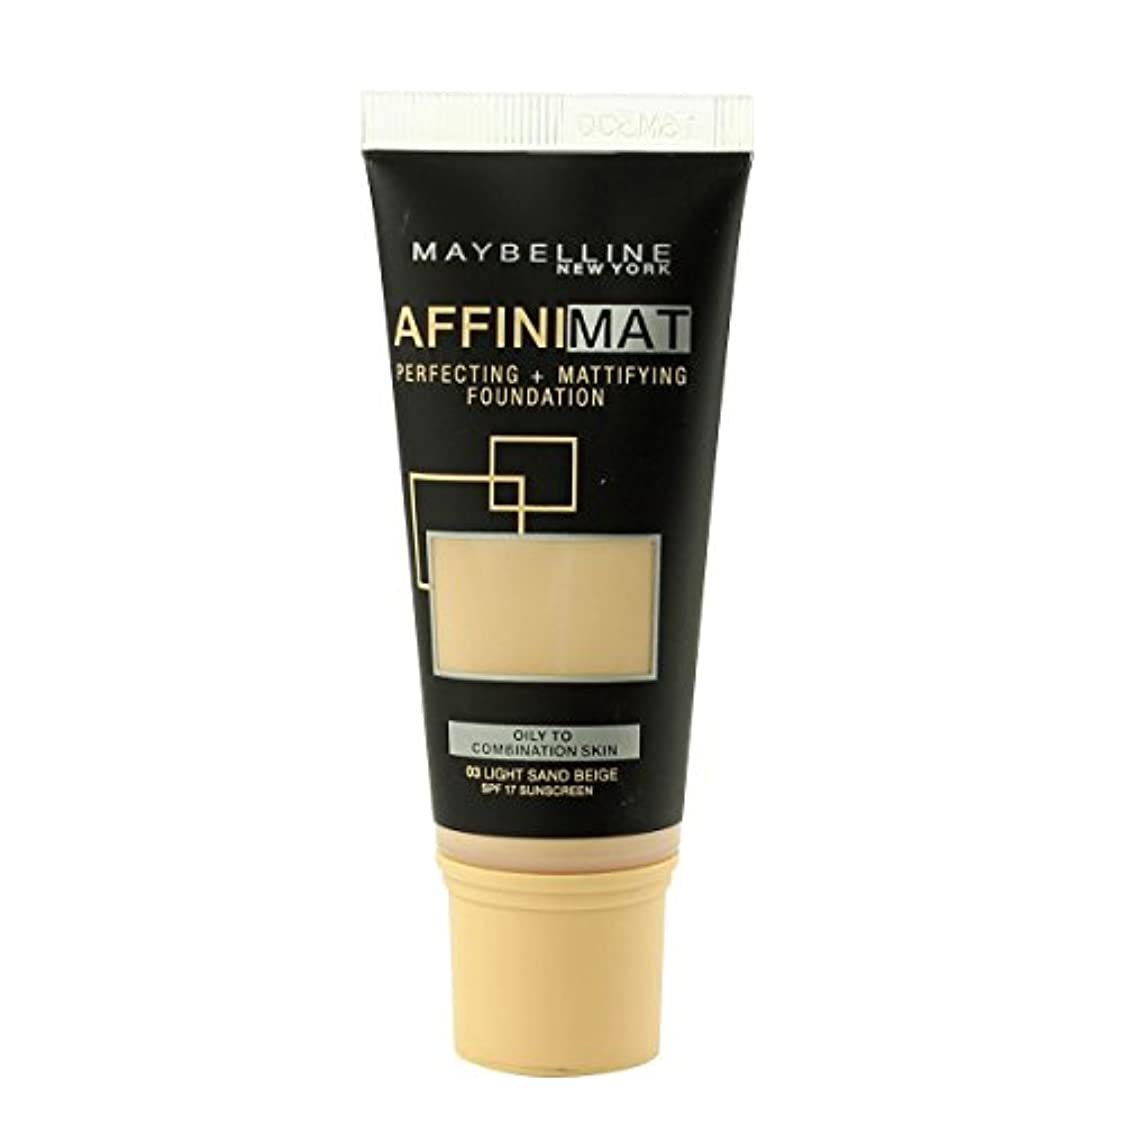 拾う著作権気がついてMaybelline Affinimat Perf.+Mattif. Foundation SPF17 (03 Light Sand Beige) 30ml